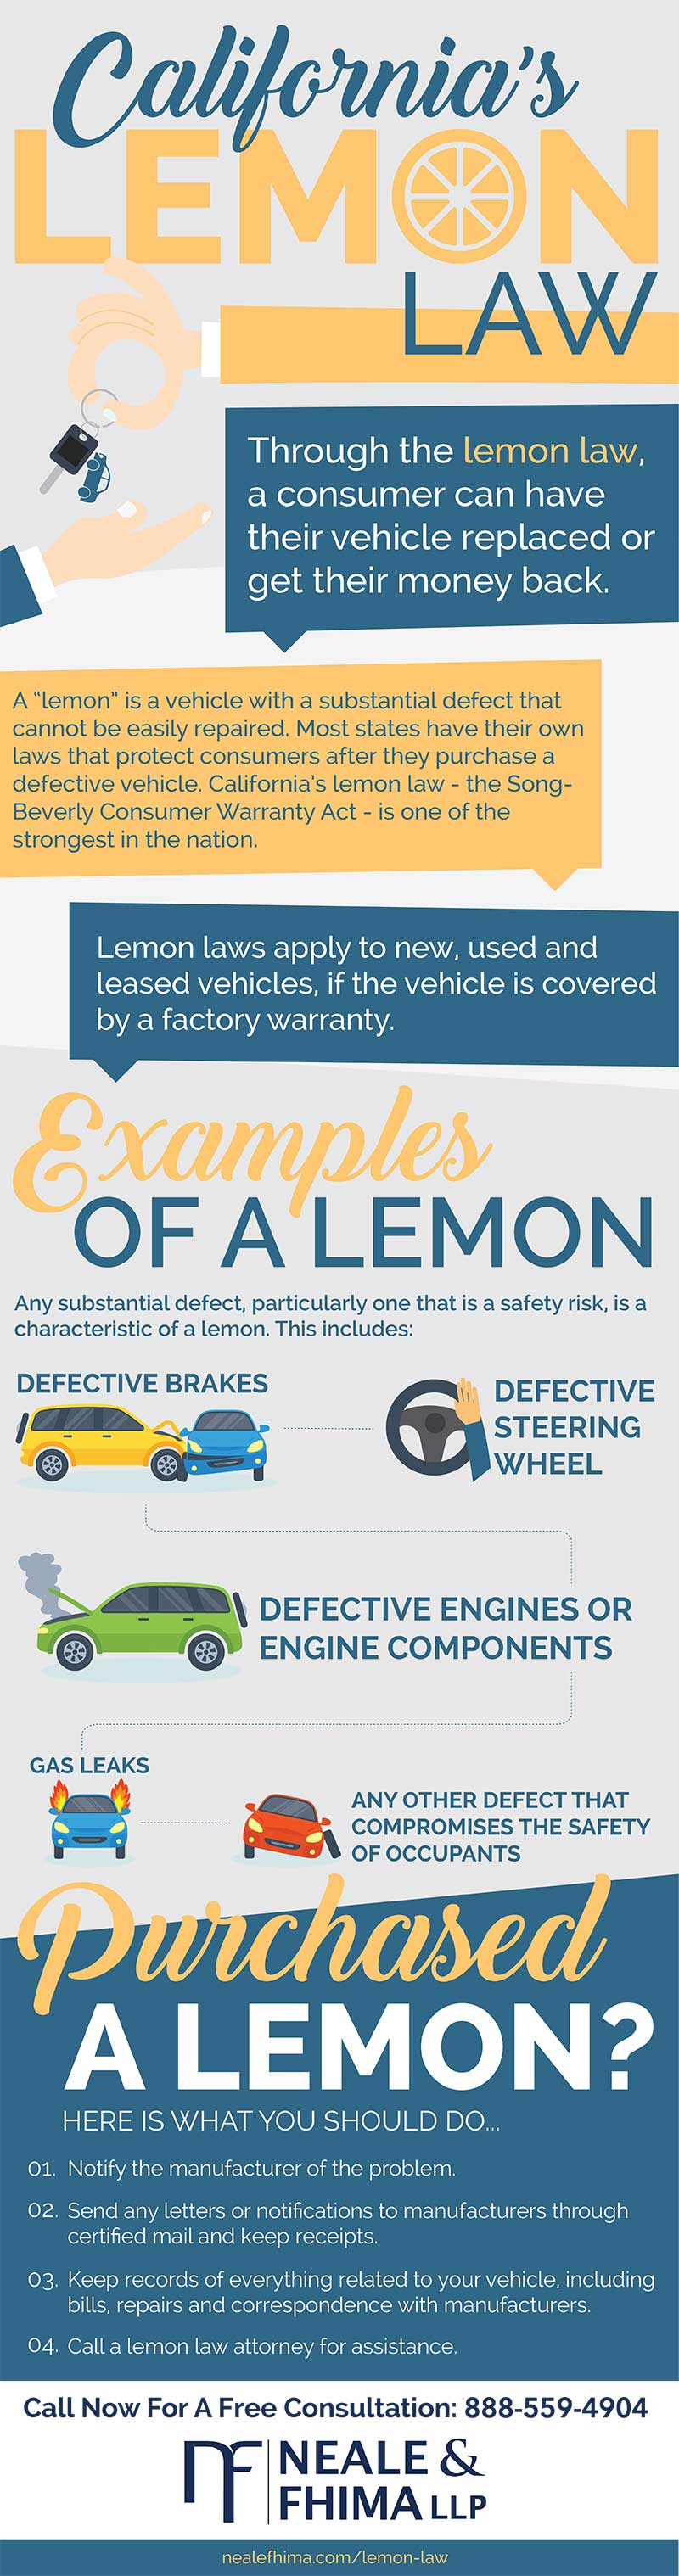 California's Lemon Law